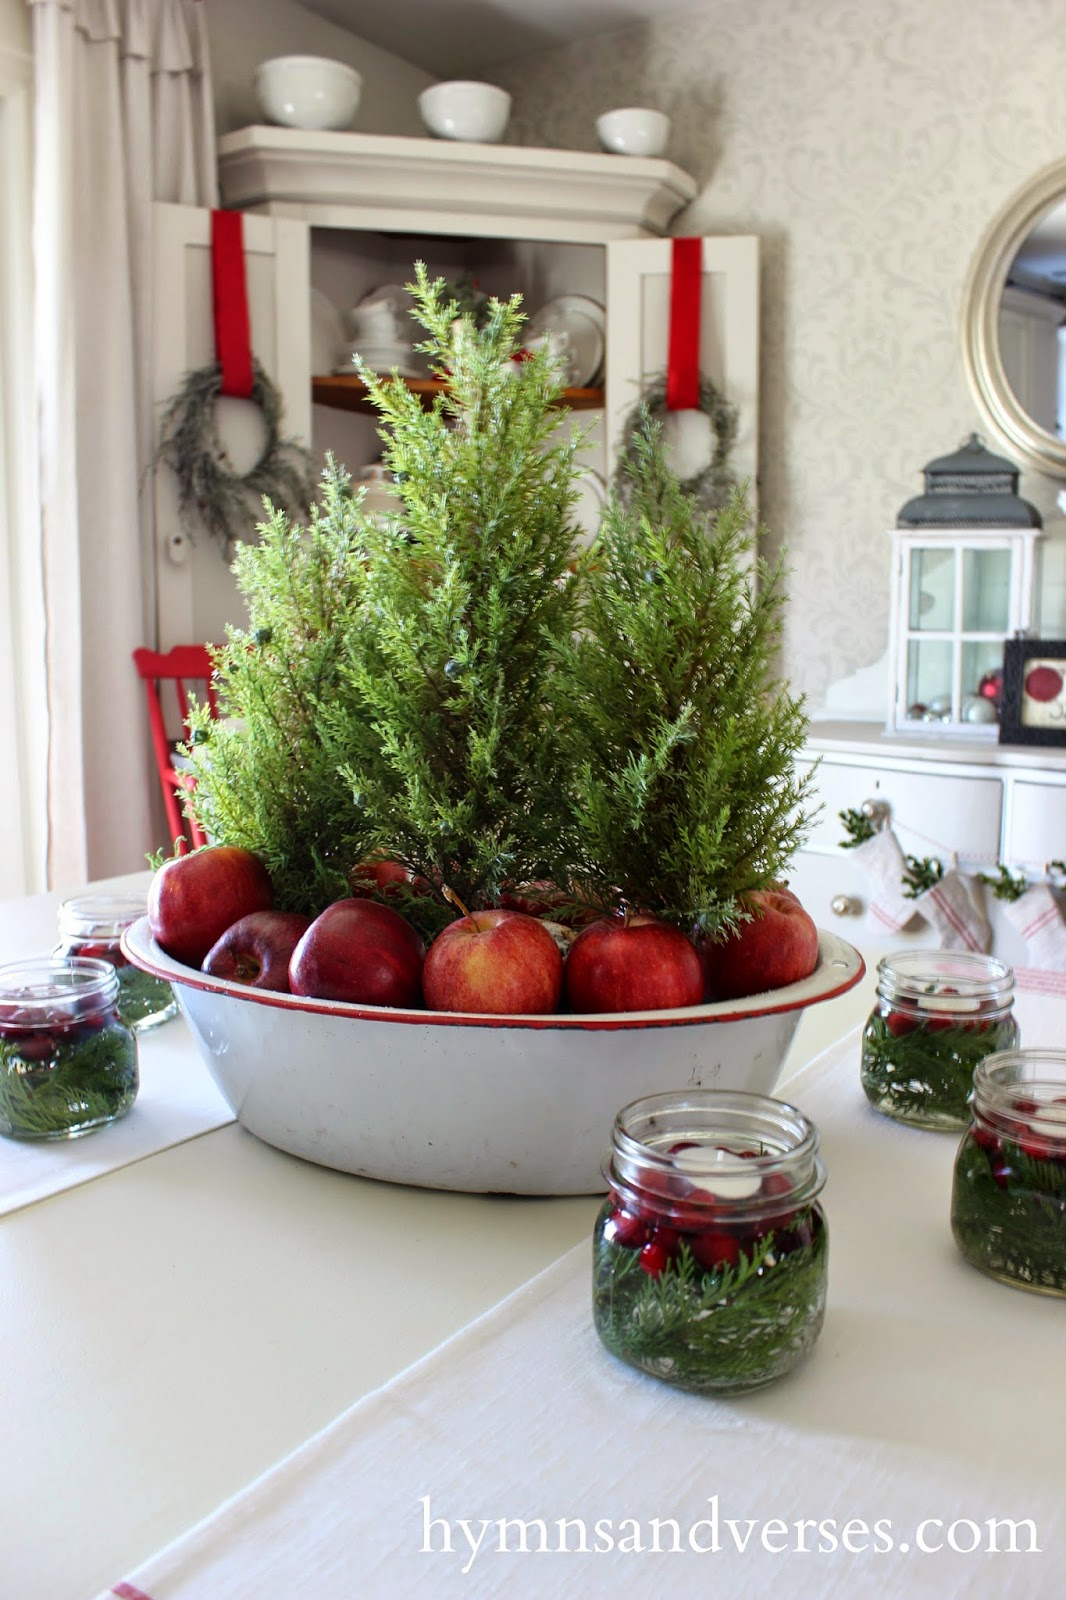 Hymns And Verses 2014 Christmas Home Tour